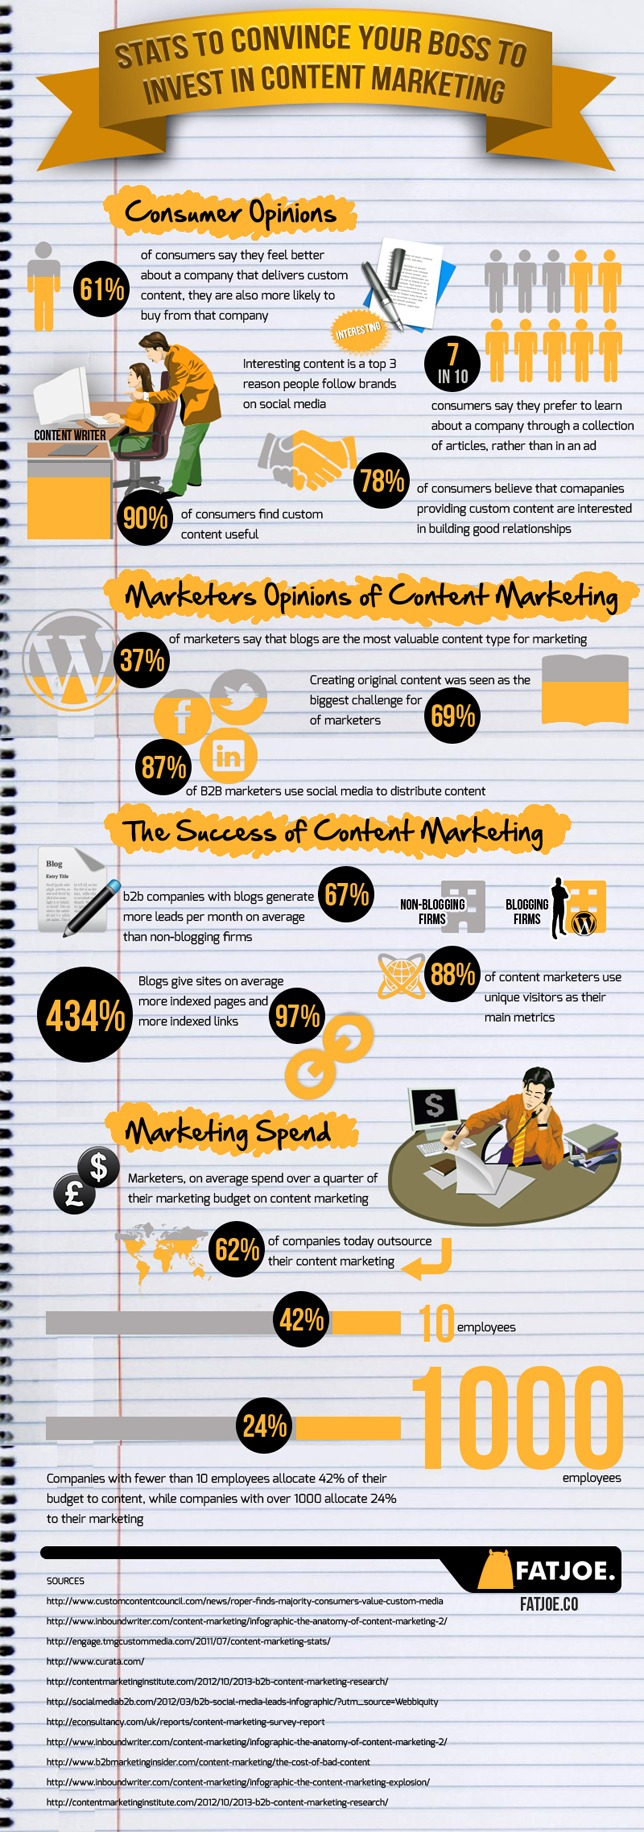 Stats to Convince Your Boss to Invest in Content Marketing